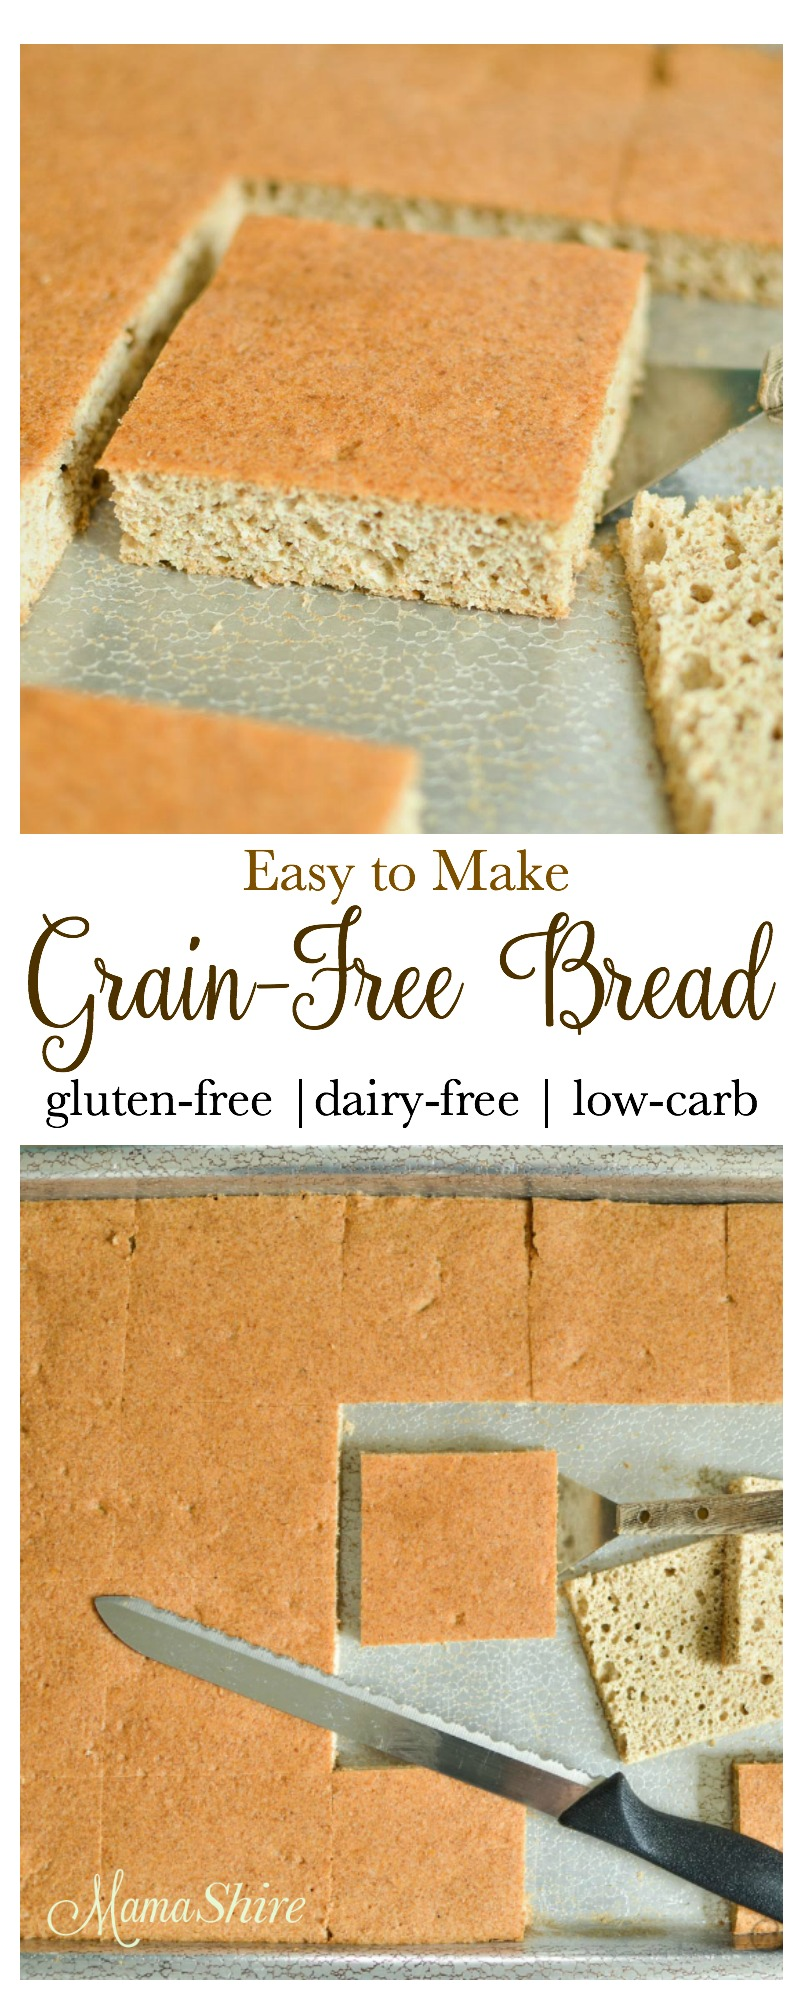 The Best Gluten-Free Bread (with Grain-Free Option)